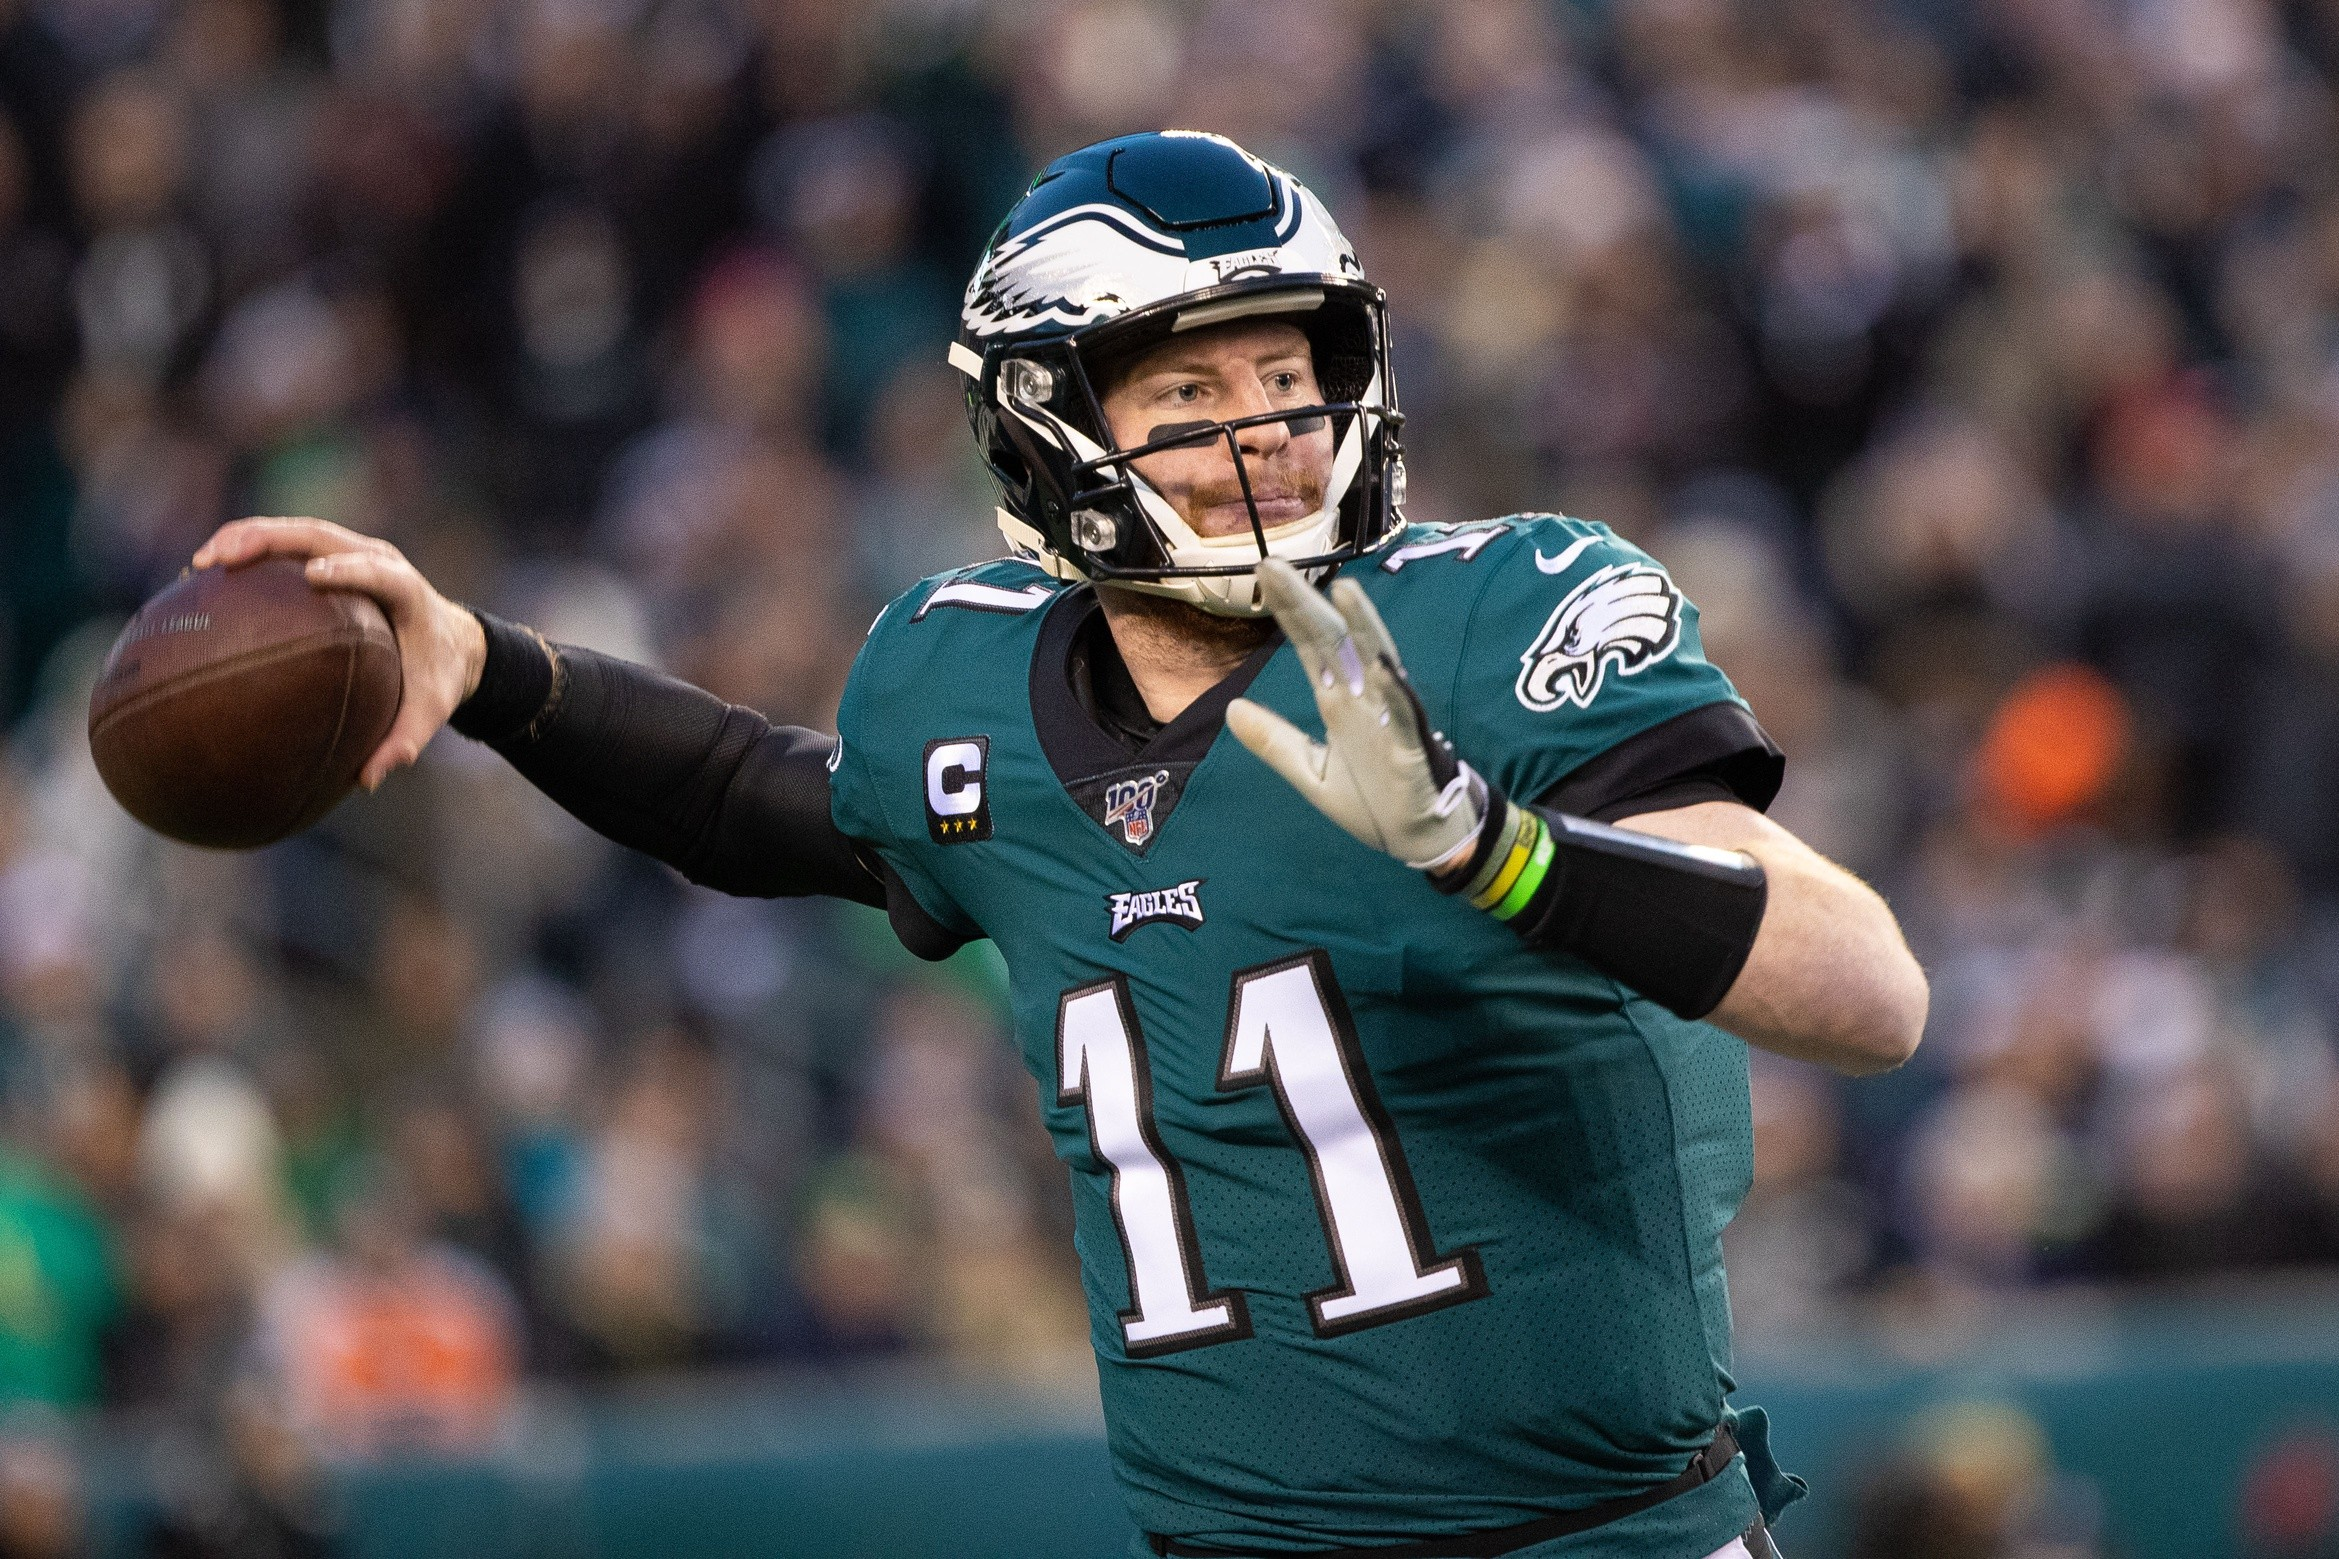 Key Stats Suggest Eagles Qb Carson Wentz Is Among The Best In The Nfl